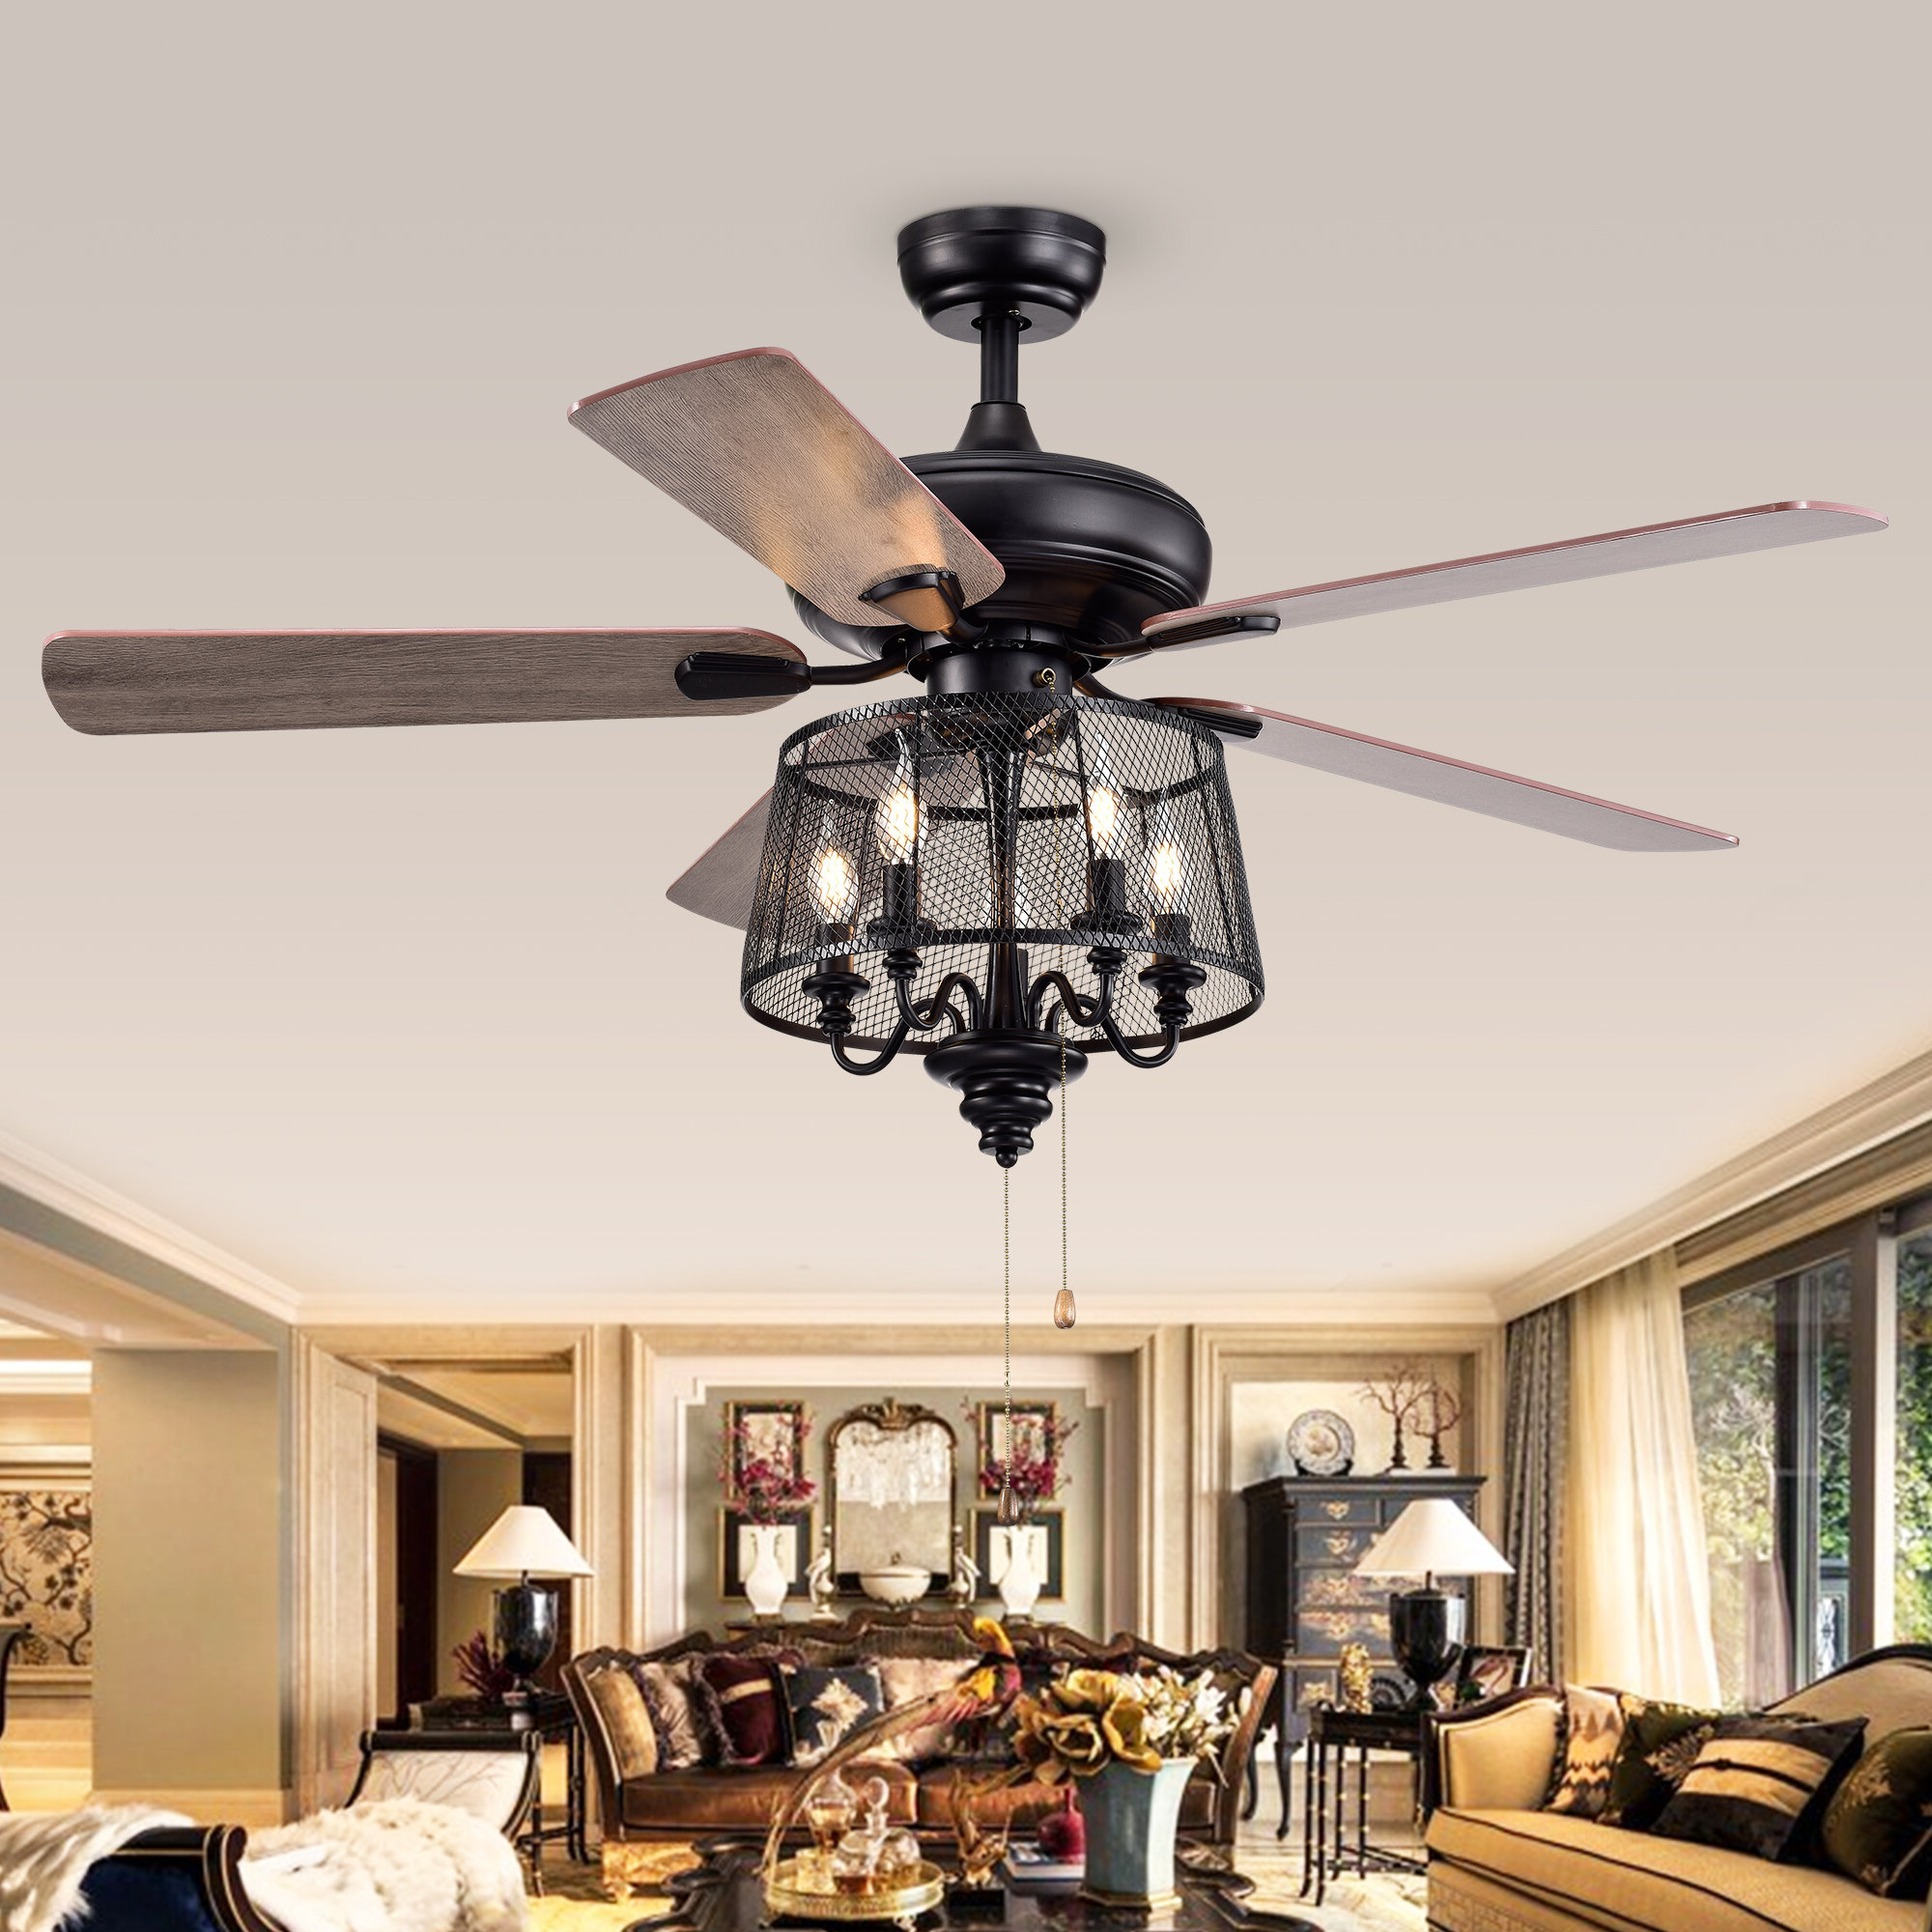 2019 Croteau 5 Blade Ceiling Fan, Light Kit Included Regarding Njie Caged Crystal 5 Blade Ceiling Fans (View 1 of 20)